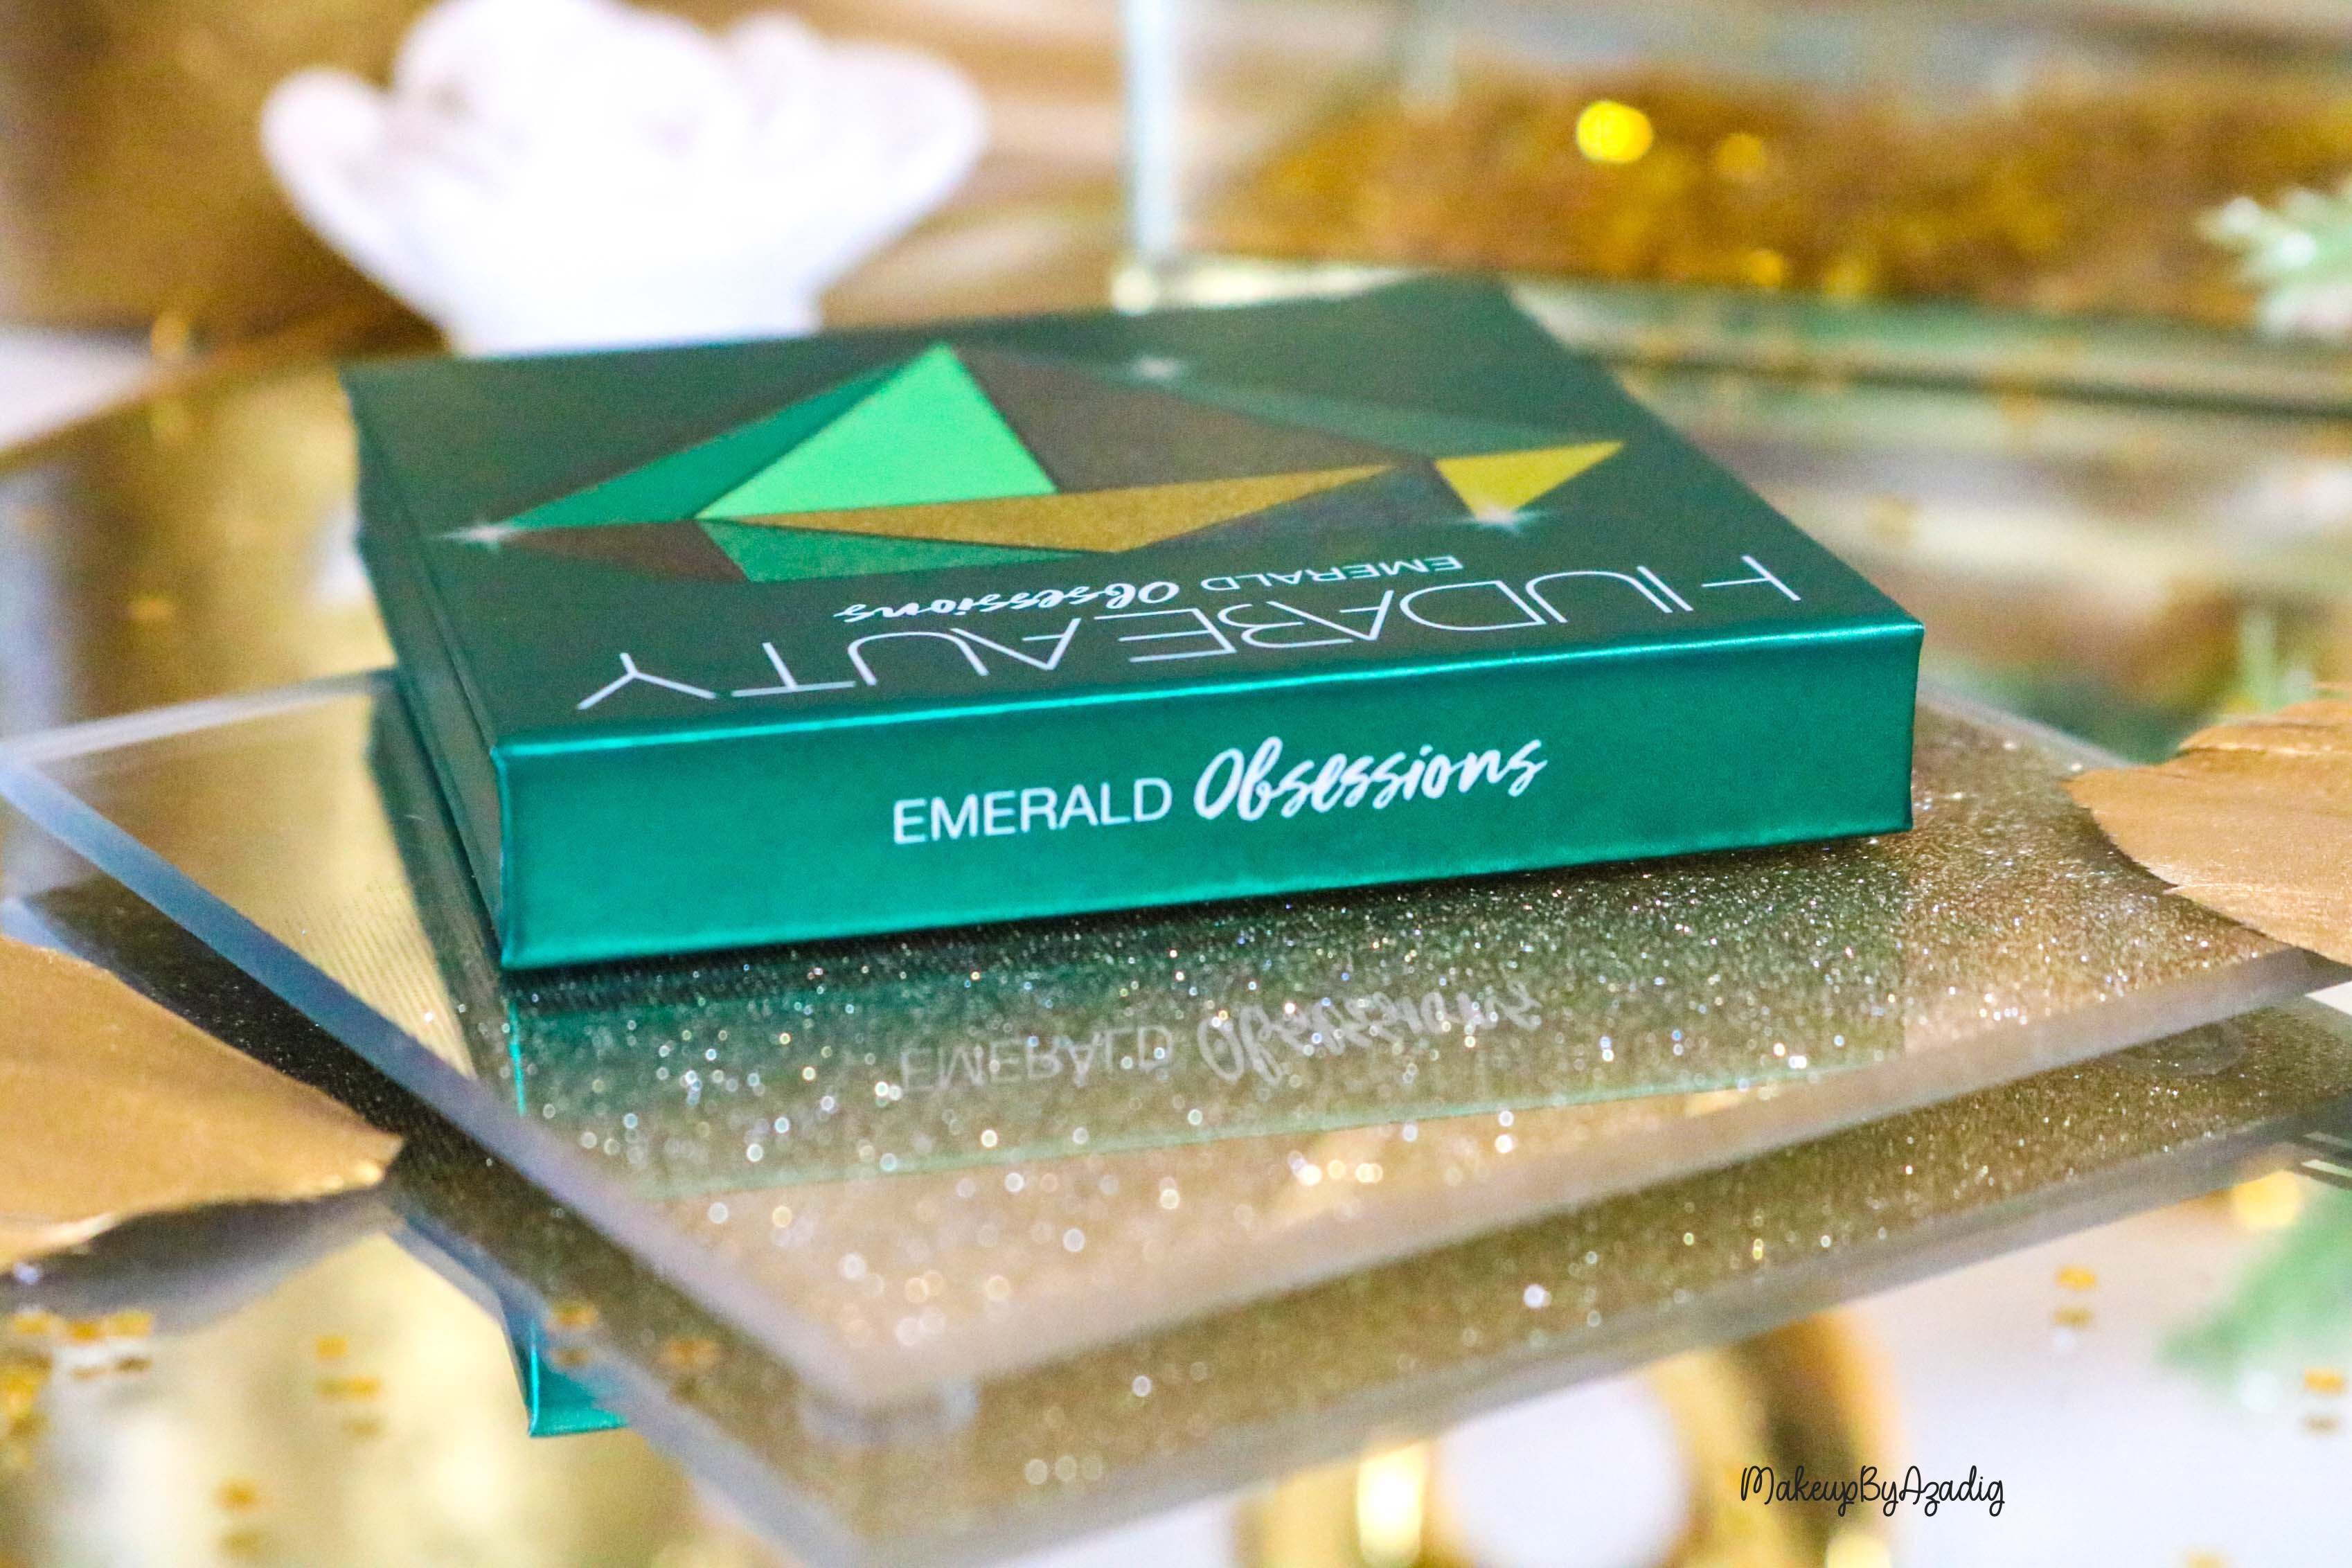 revue-review-palette-emerald-obsessions-huda-beauty-topaz-sapphire-avis-prix-swatch-makeupbyazadig-meilleure-packaging